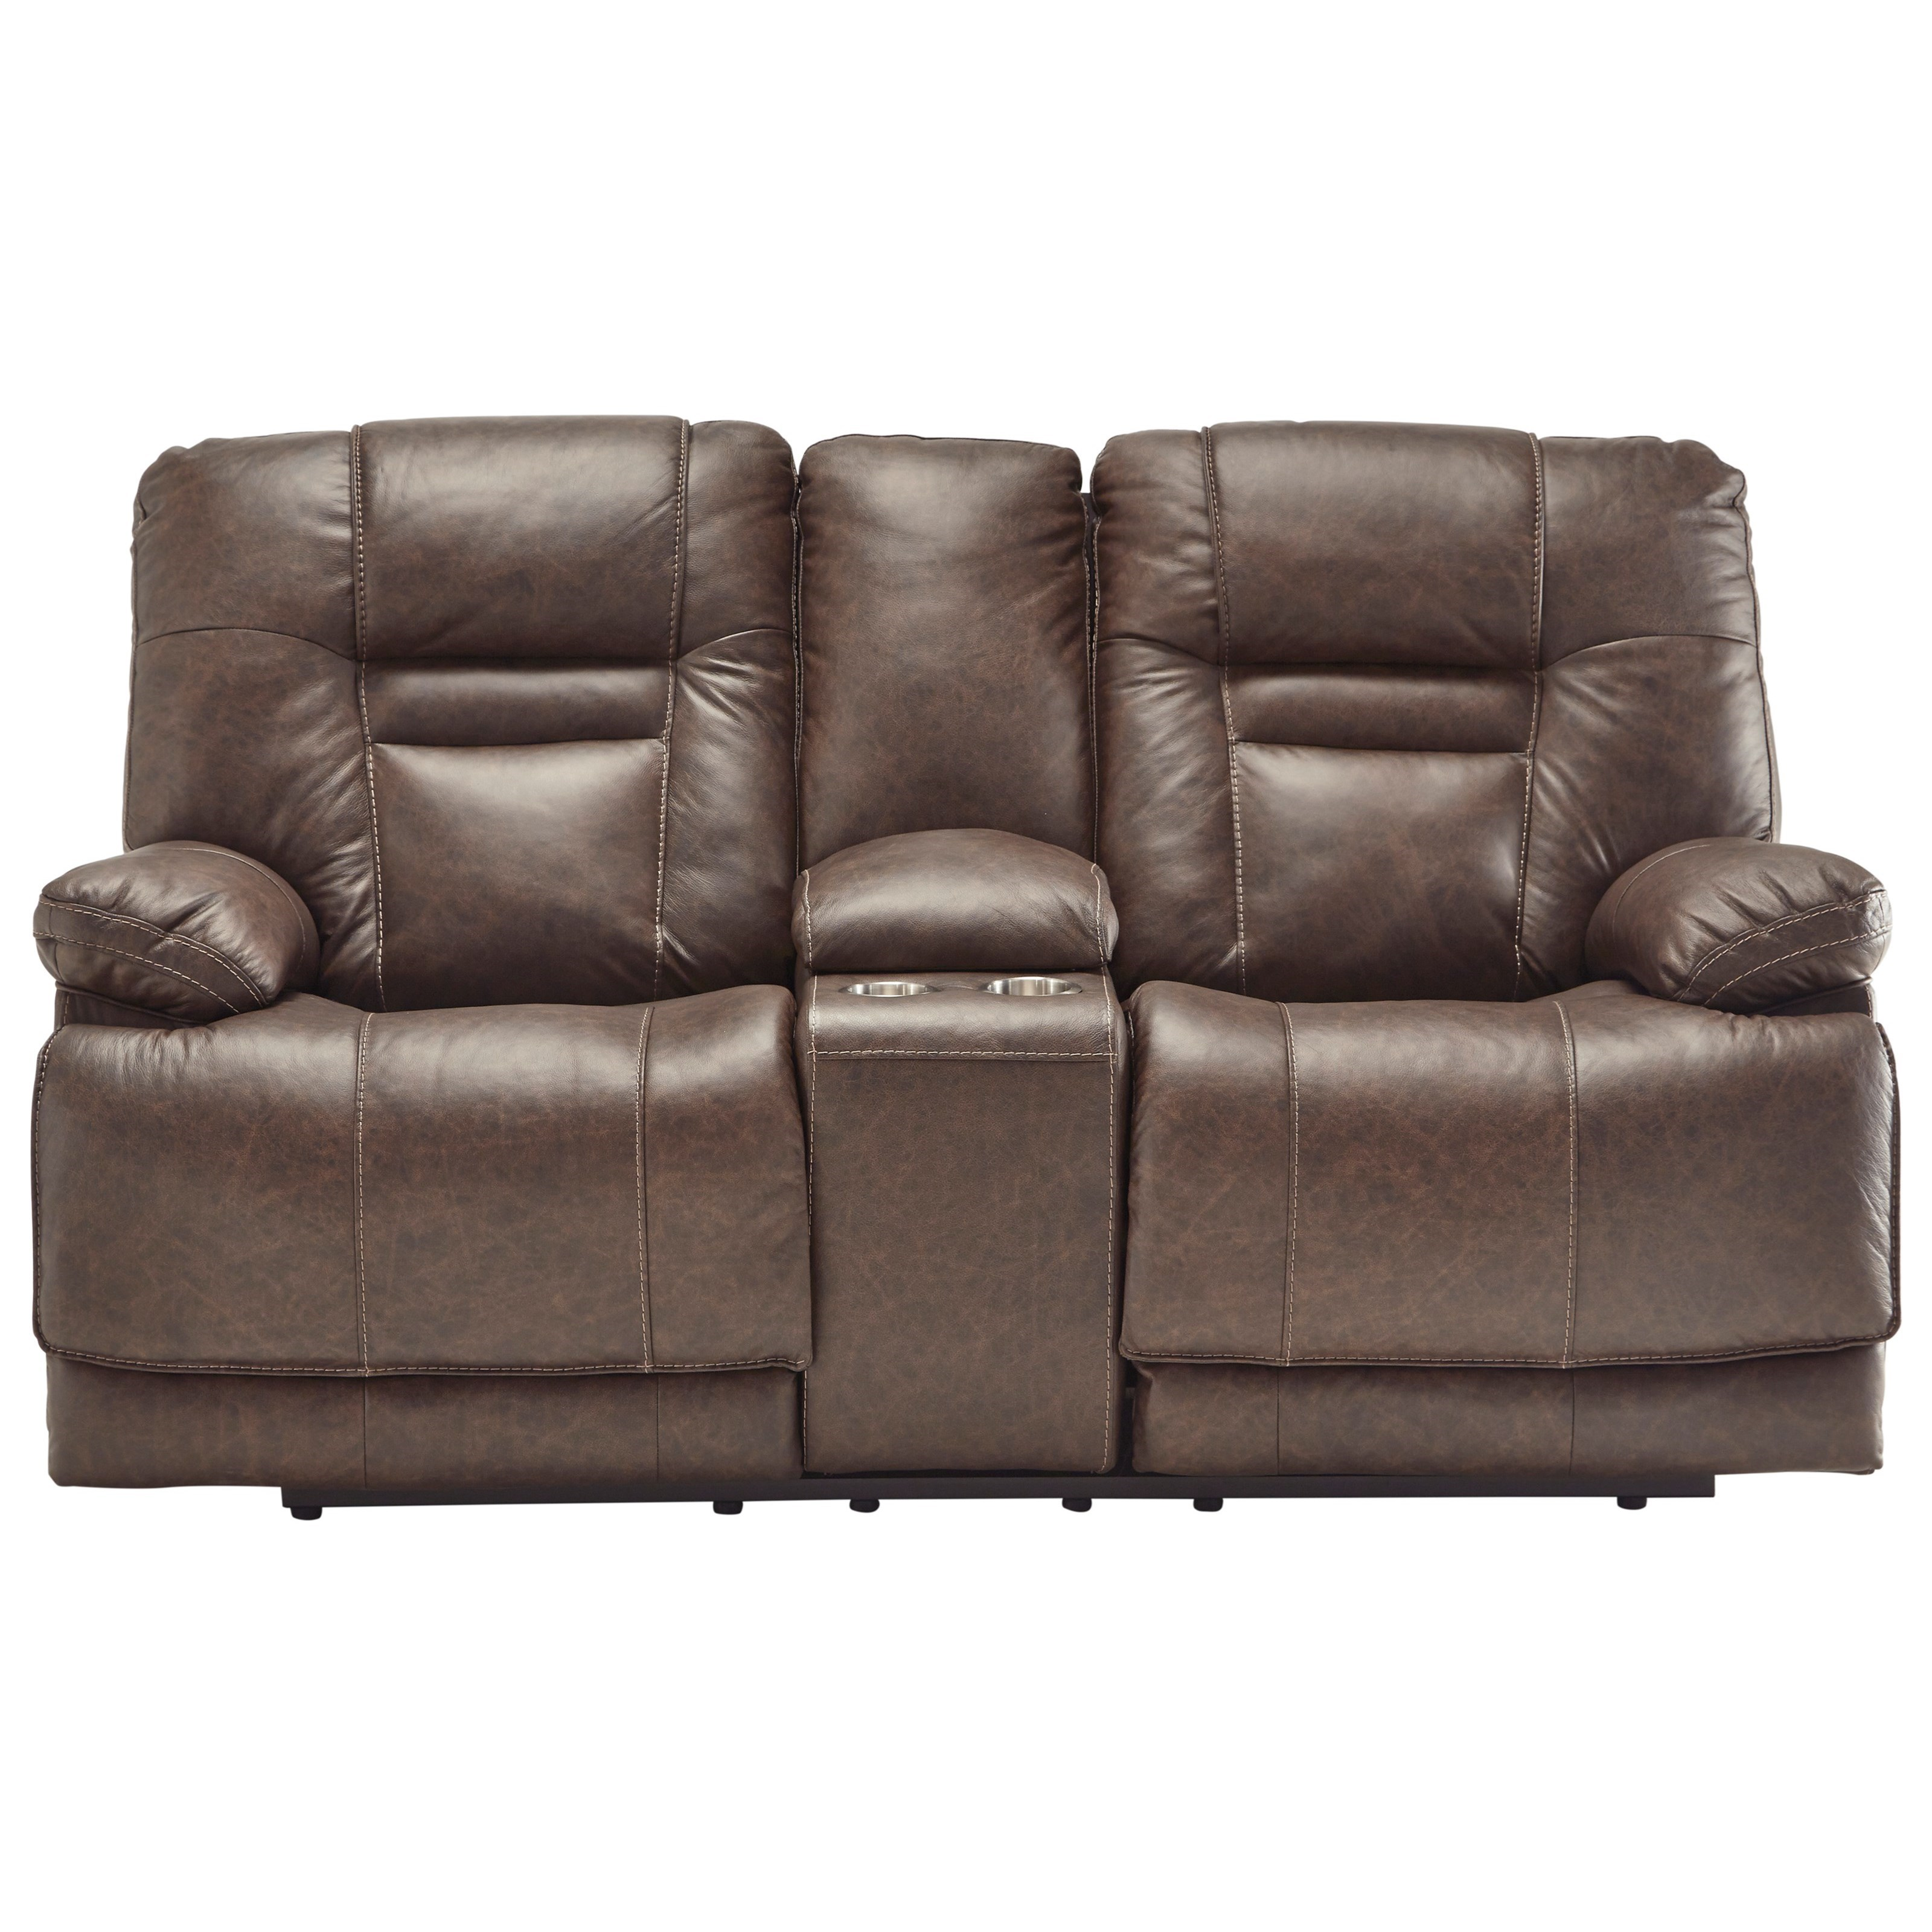 Wurstrow TRIPLE PWR Reclining Leather Loveseat by Signature at Walker's Furniture